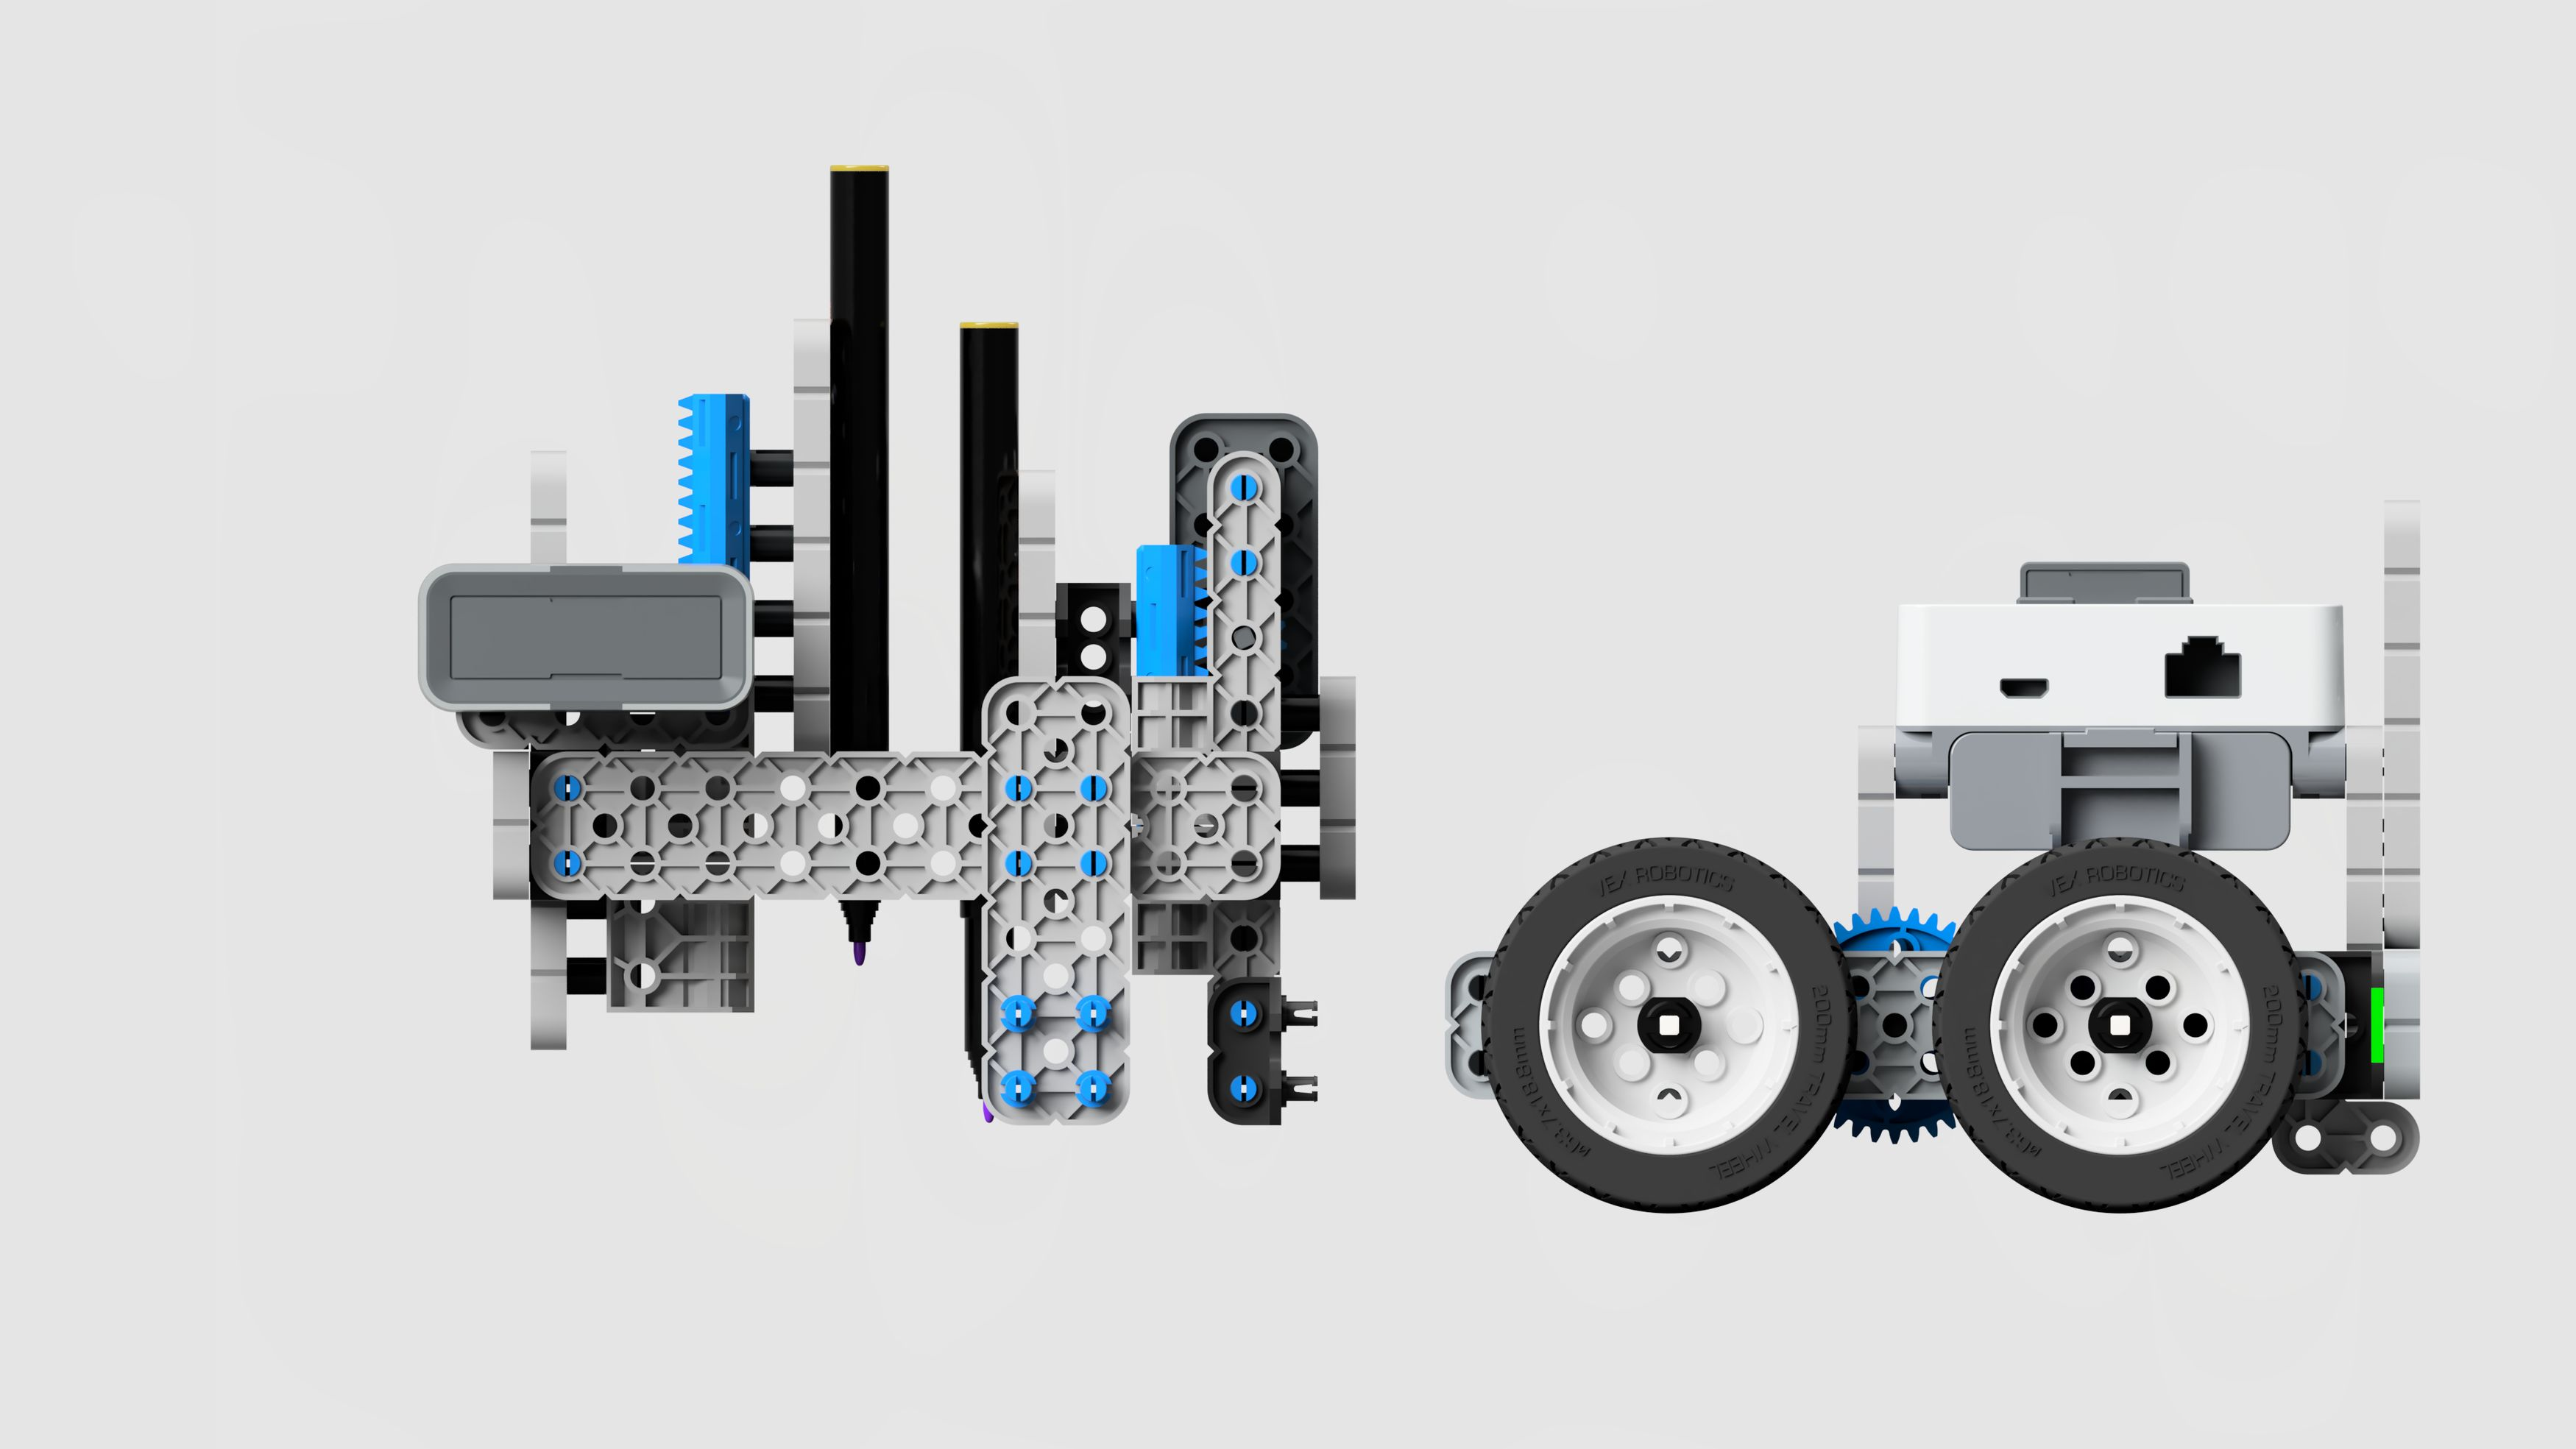 Vex-iq-robot-caneta-2020-may-24-04-57-50pm-000-customizedview3858184568-png-3500-3500